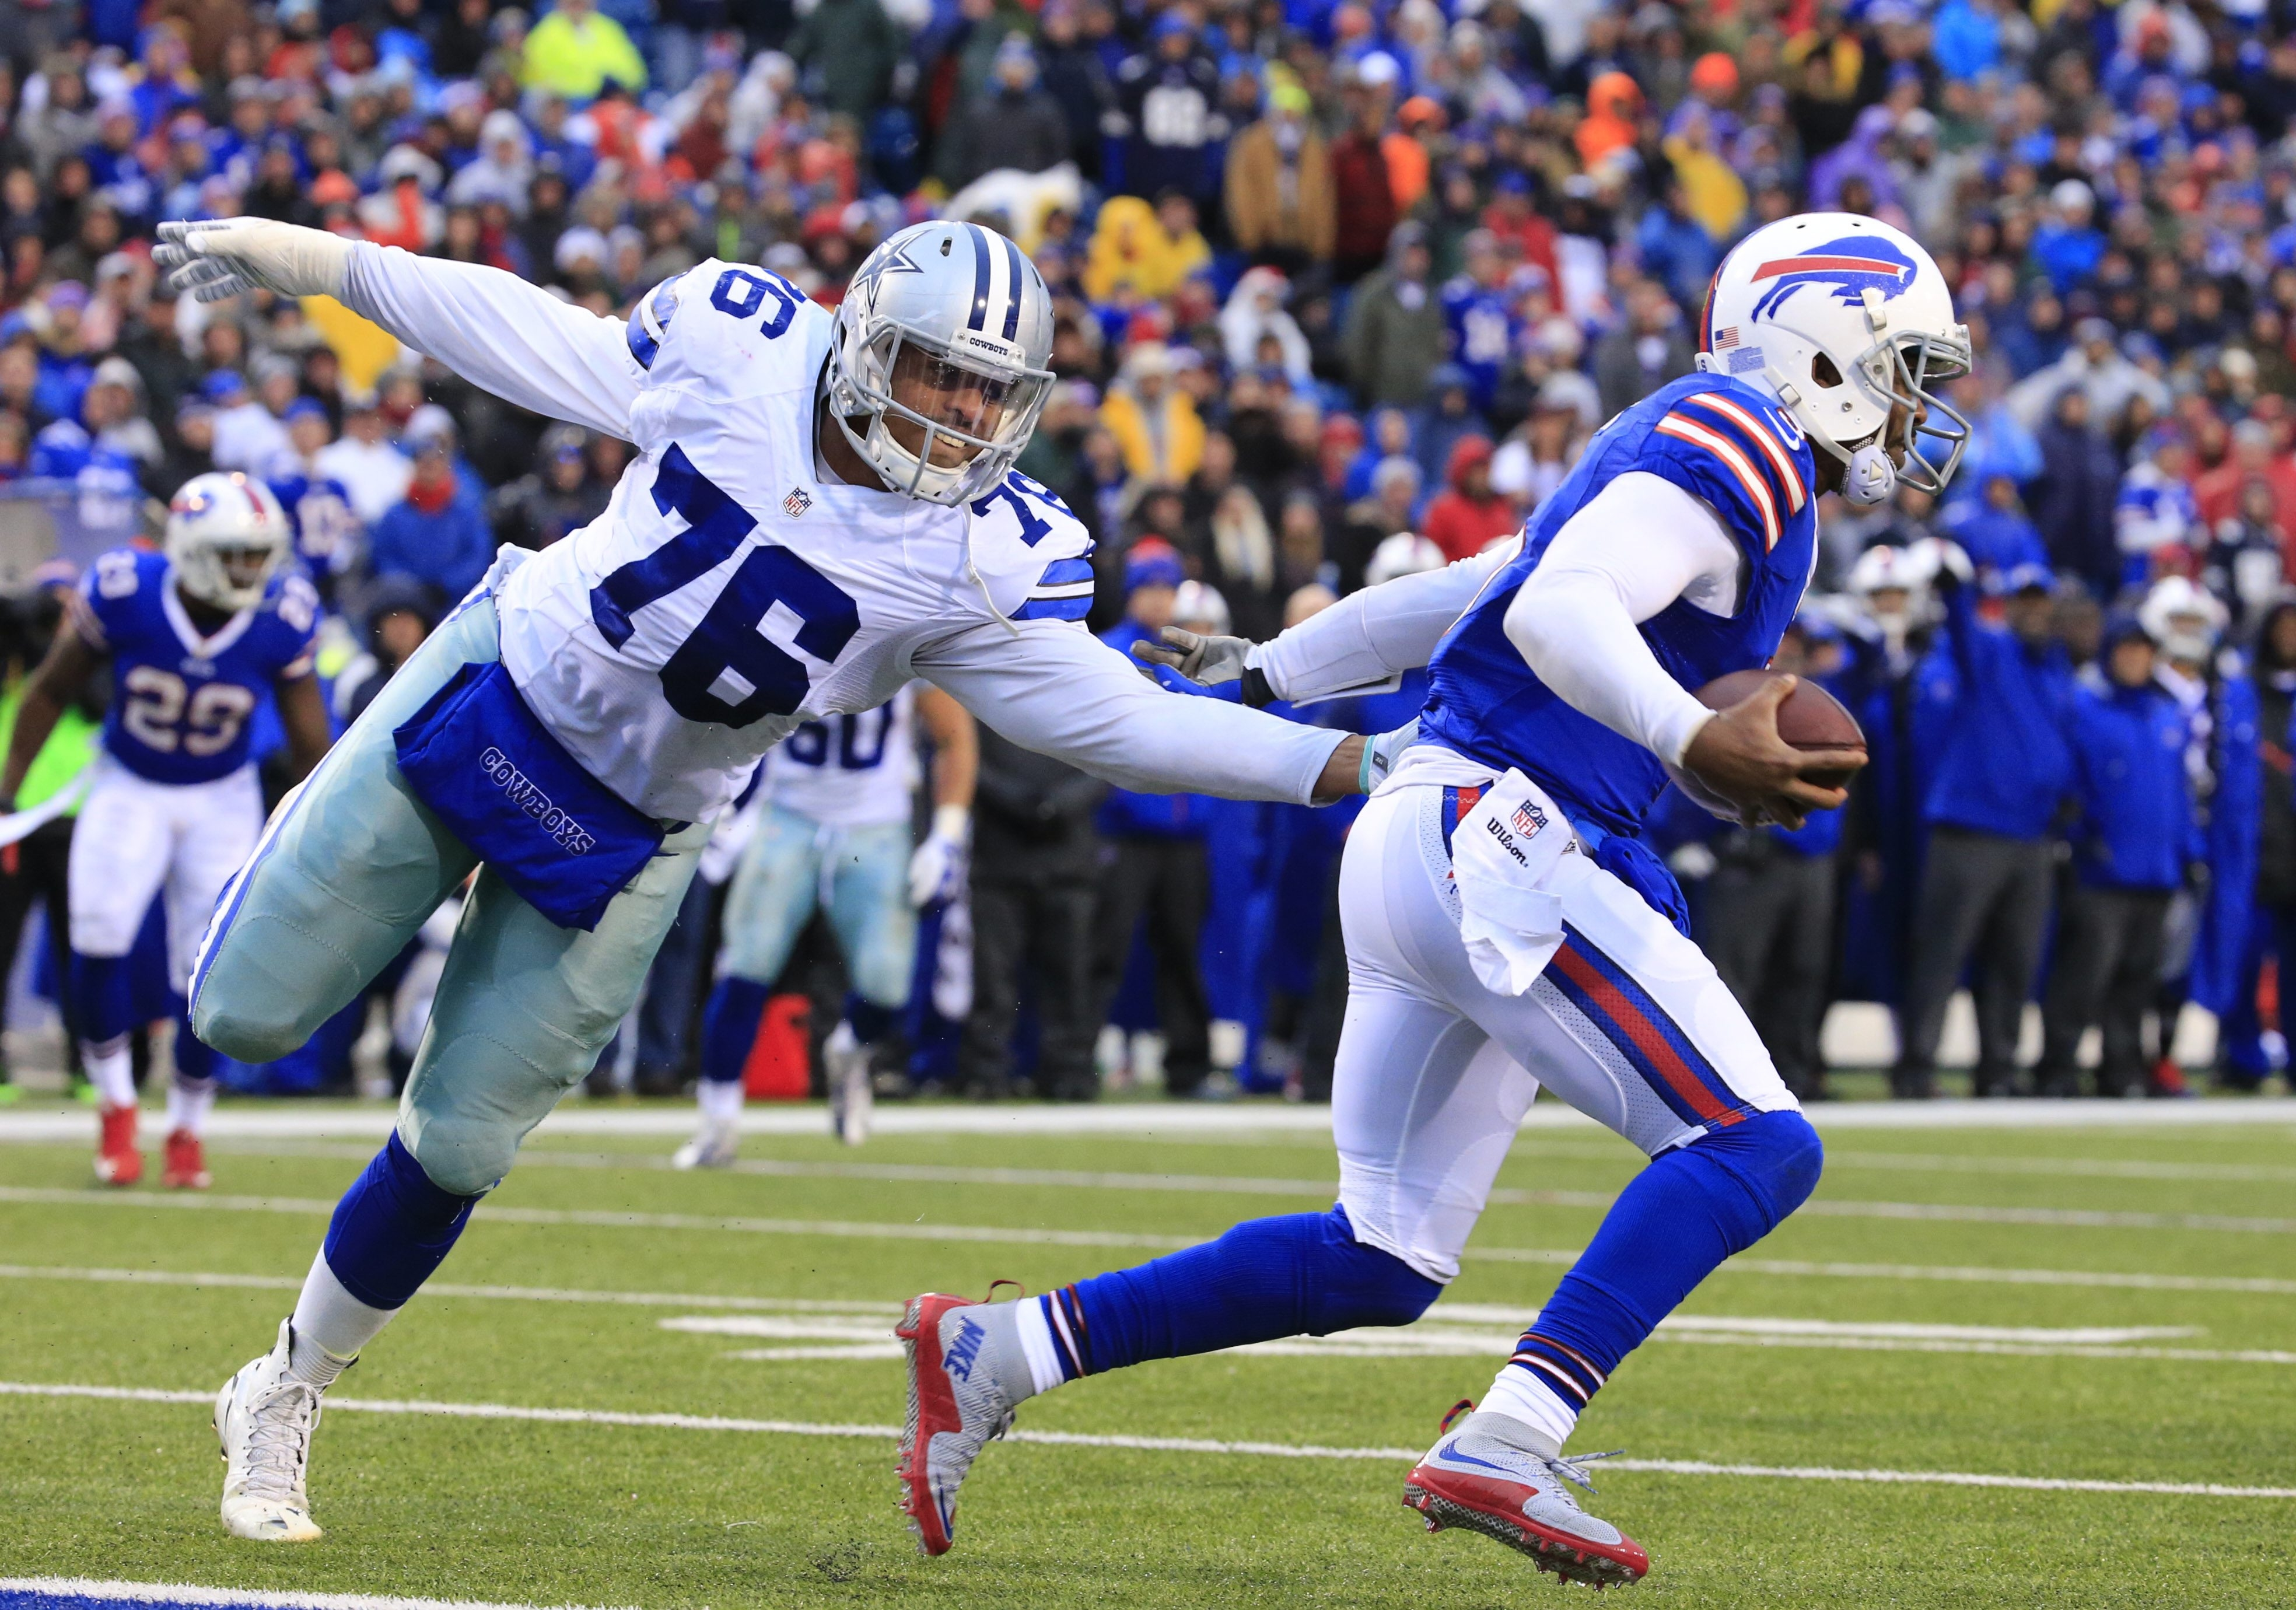 Bills quarterback Tyrod Taylor escapes from Cowboys defensive end Greg Hardy to pick up yardage on a scramble during the fourth quarter.